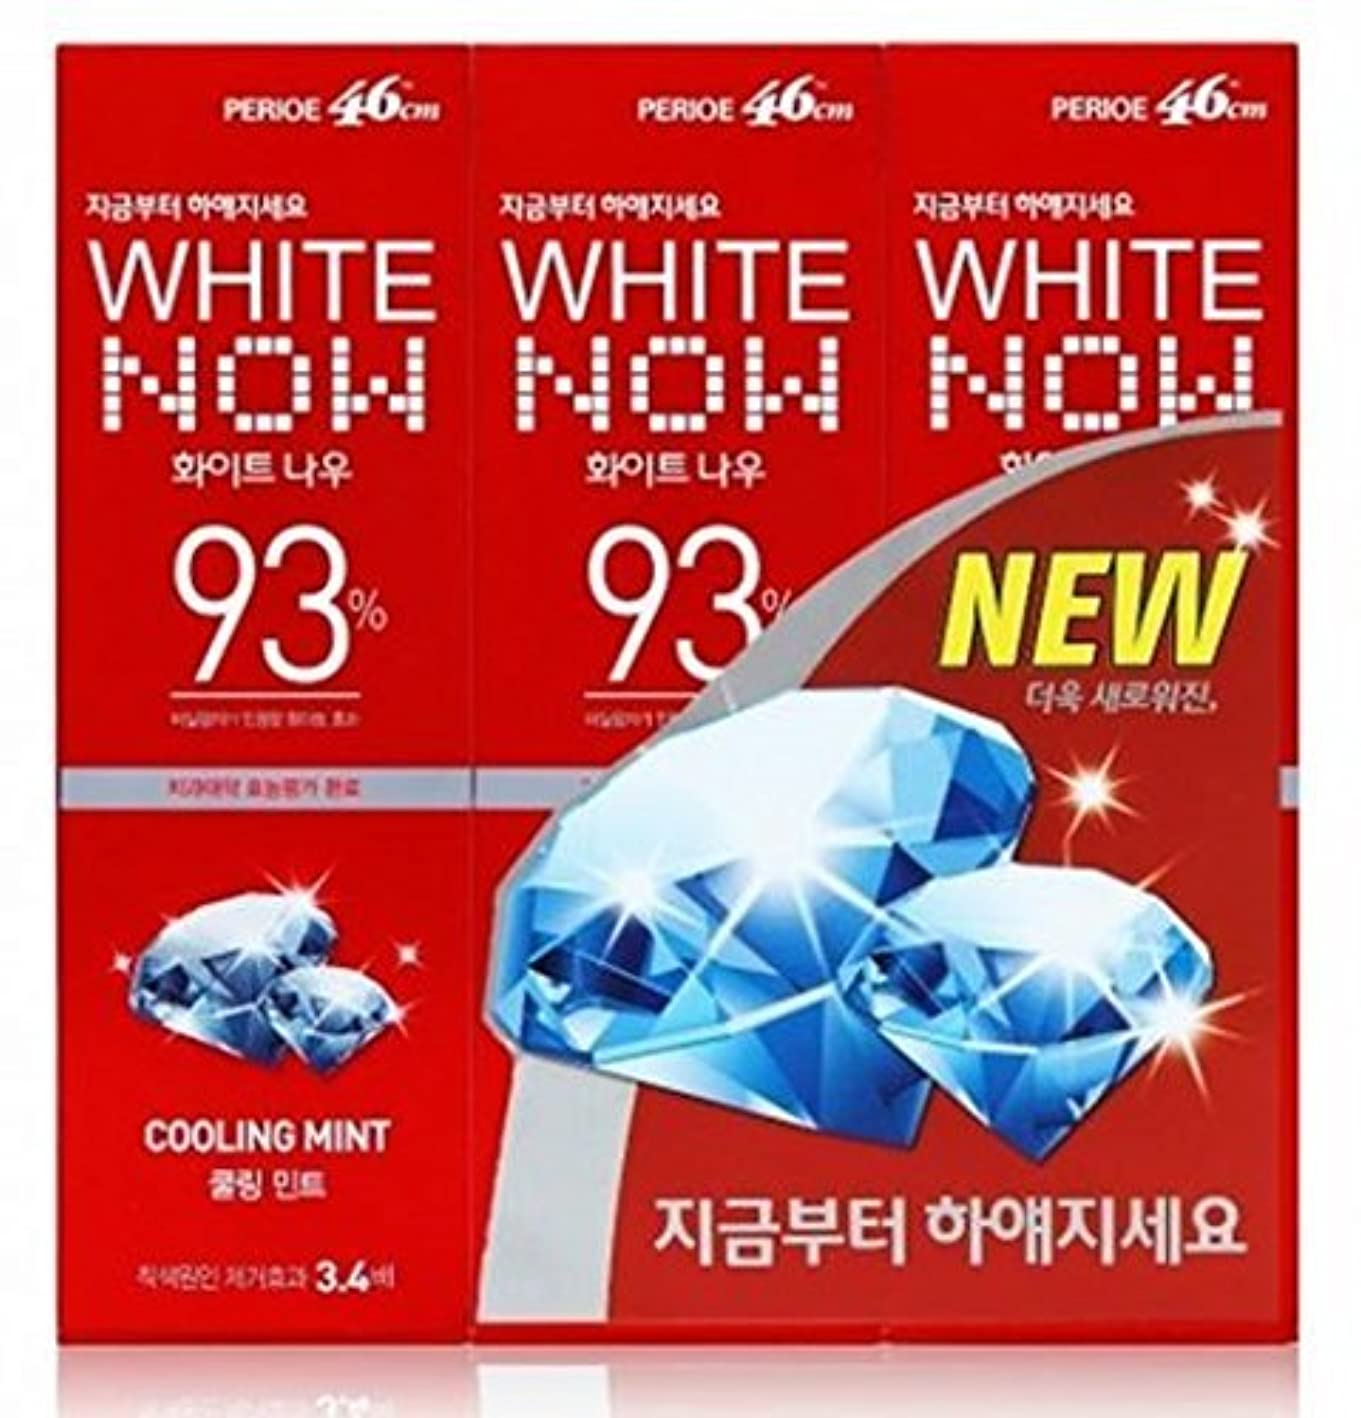 レイアウト仮説郊外Lg Perioe 46cm Toothpaste Oral Care White Now 93% Cooling Mint 100g X 3 by perioe